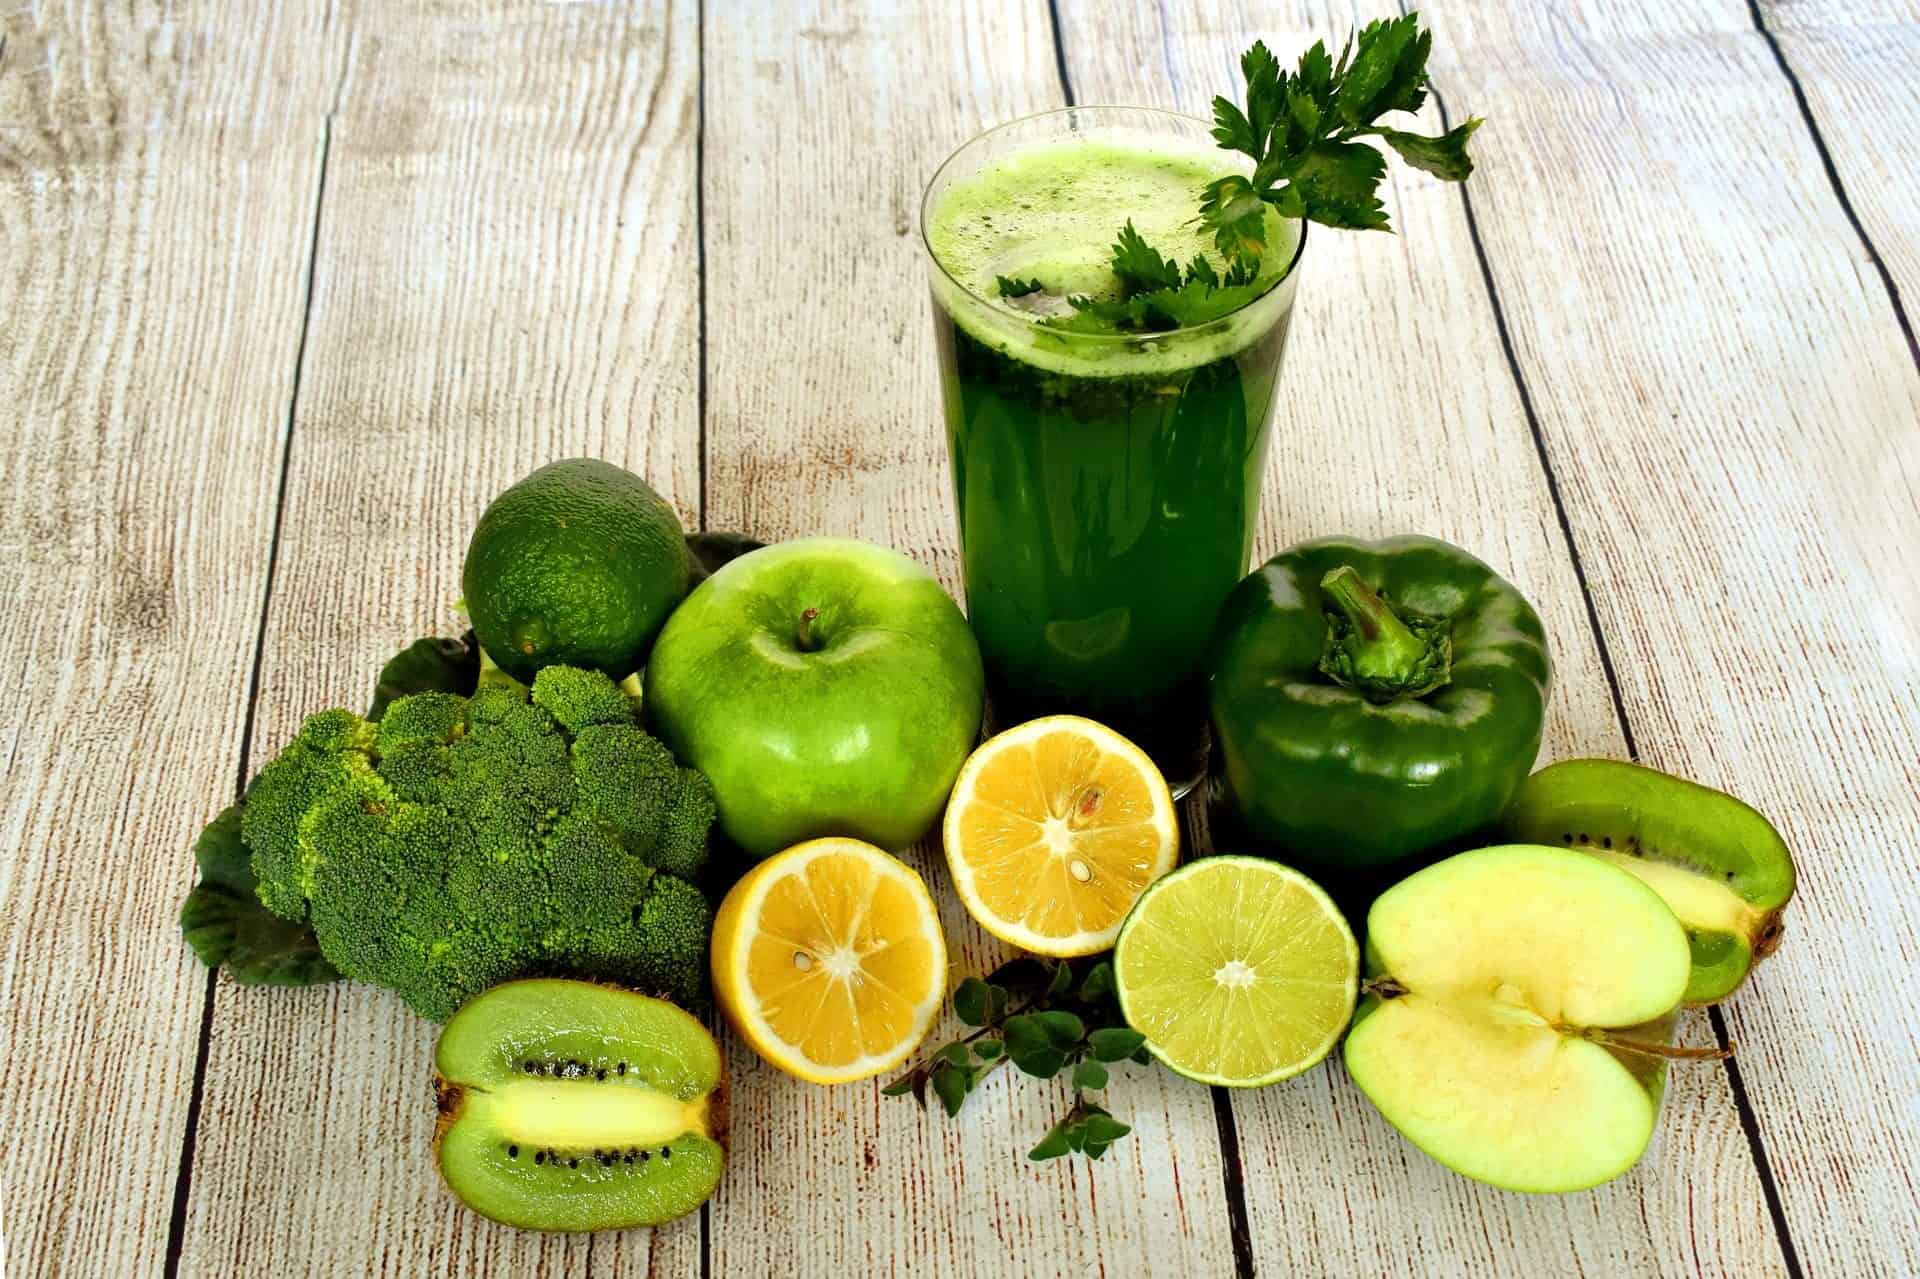 green smoothie limes oranges spinach